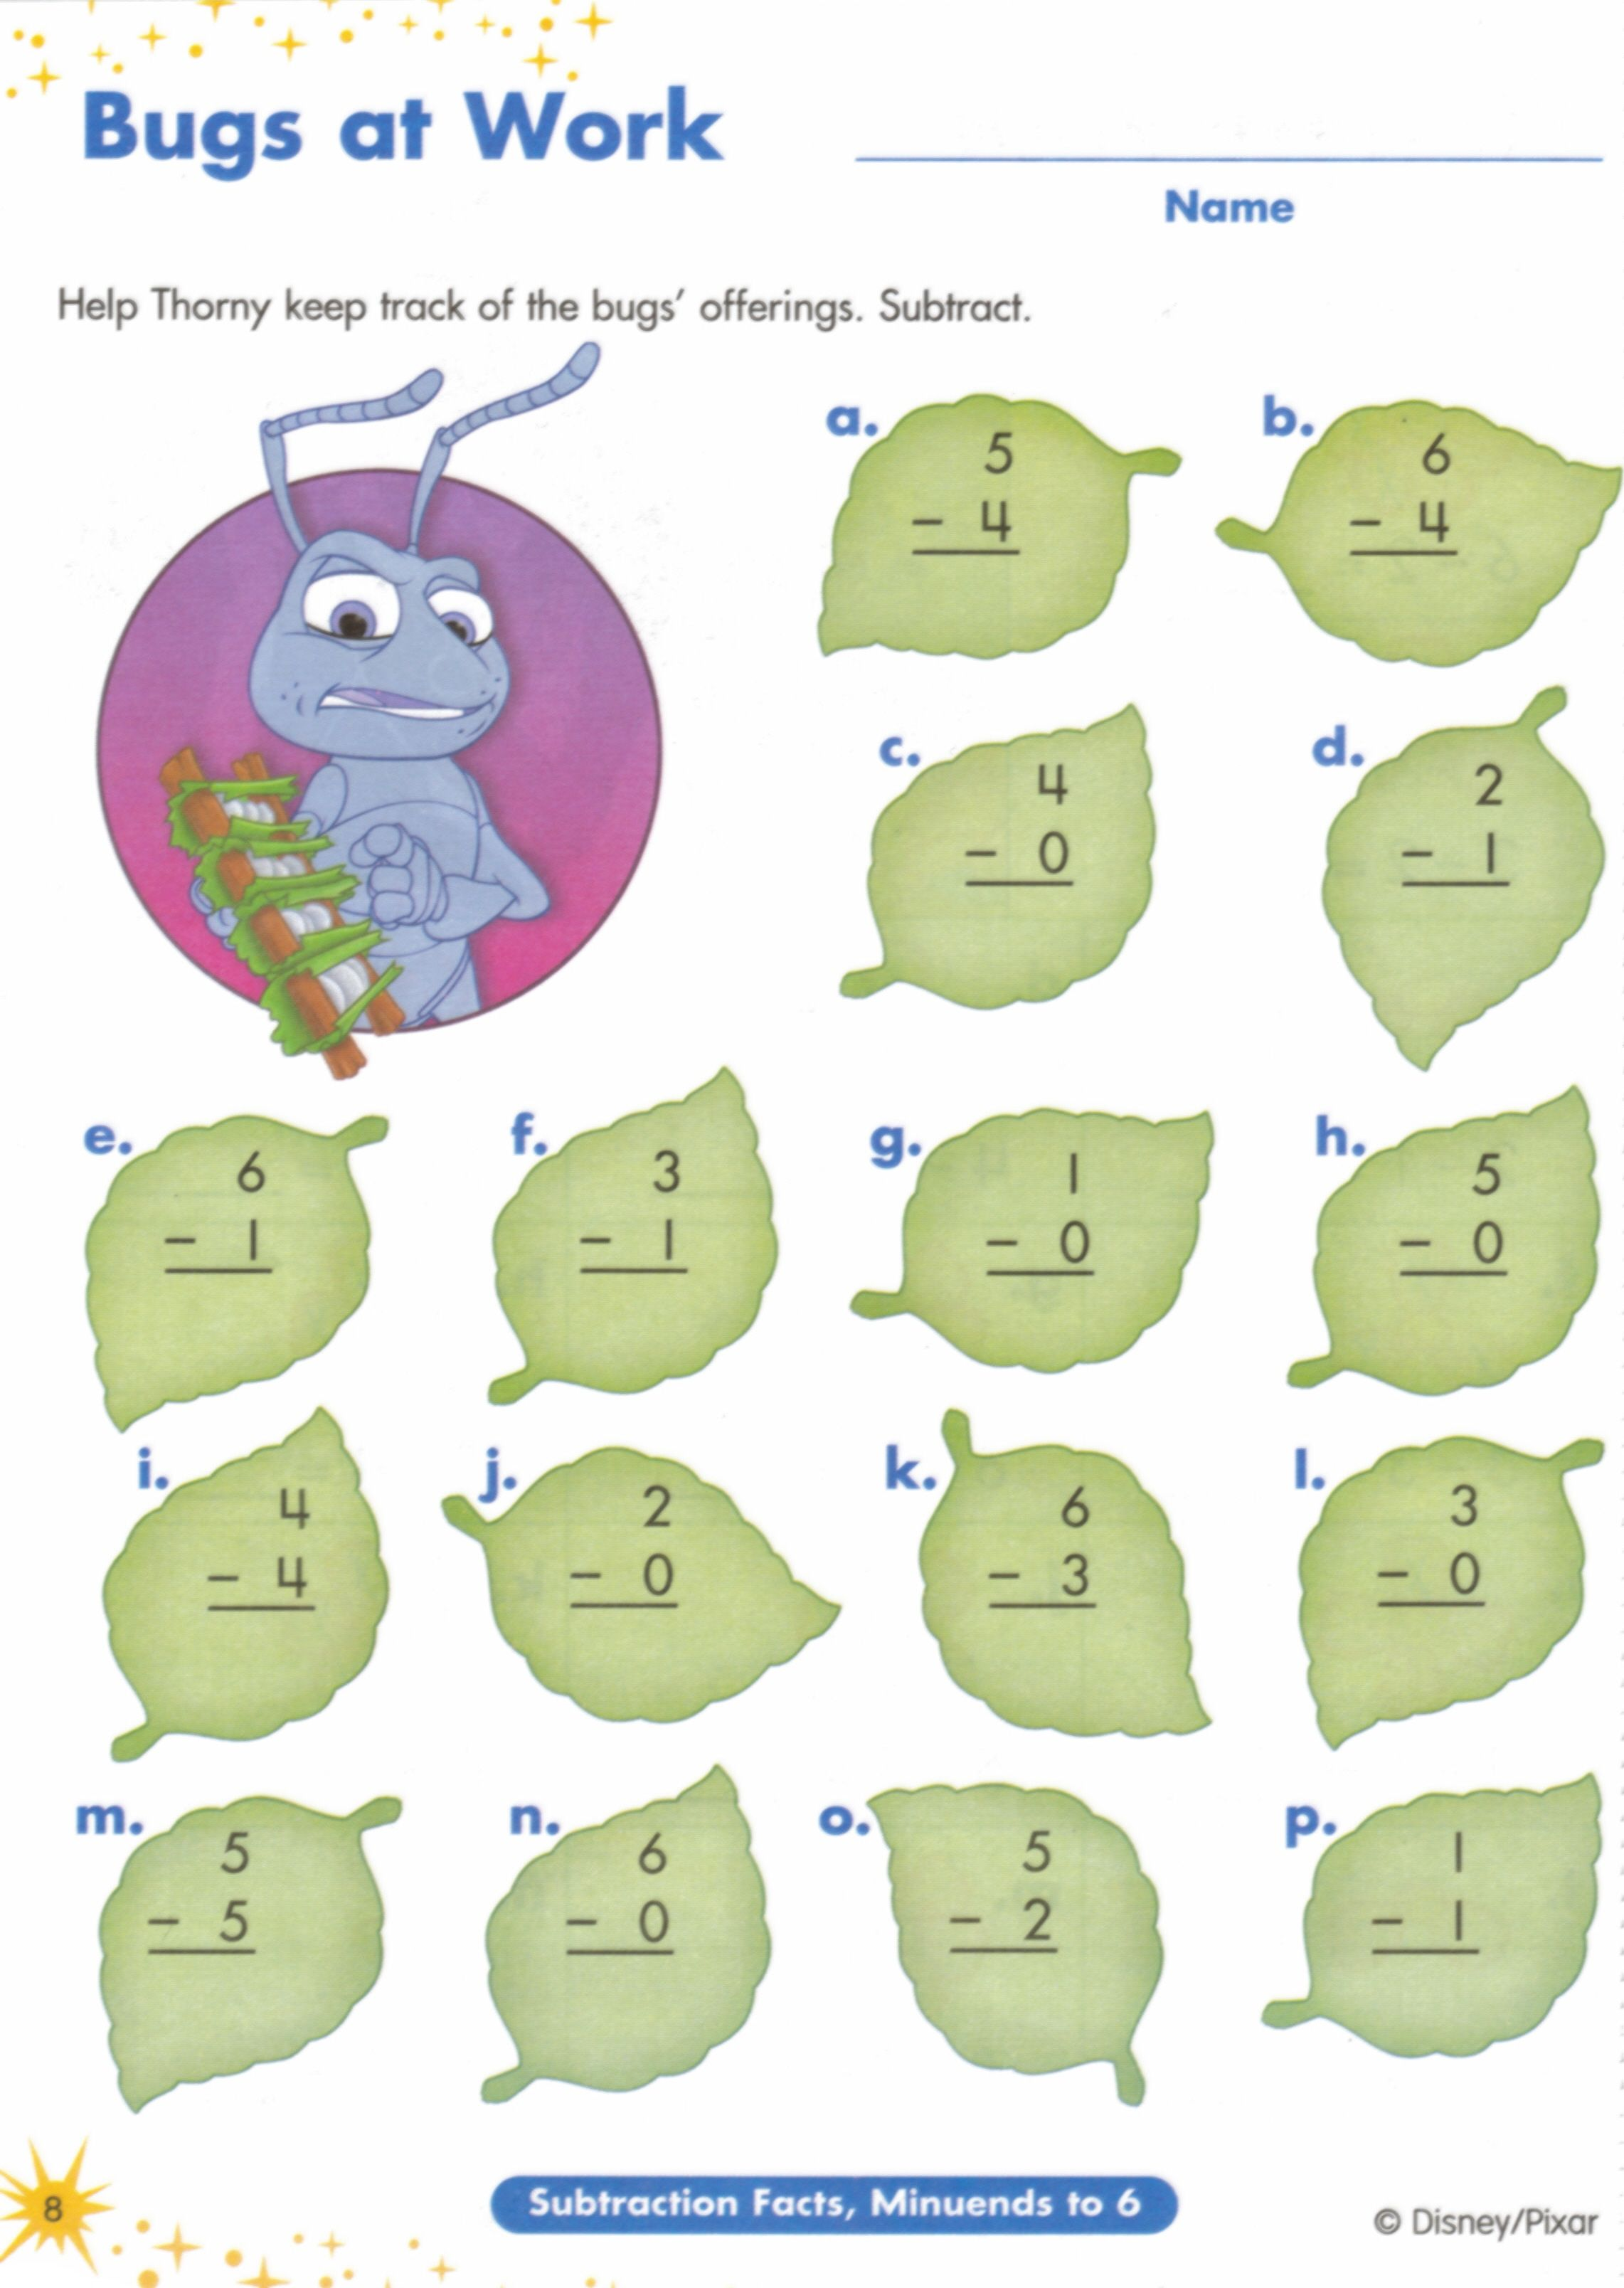 Proatmealus  Fascinating  Images About Worksheets On Pinterest  Fun Facts For Kids  With Luxury  Images About Worksheets On Pinterest  Fun Facts For Kids Earth Day Worksheets And Jungles With Delectable Probability Printable Worksheets Also Adding To  Worksheets In Addition Second Grade Worksheets Reading And Formula Or Molar Mass Worksheet As Well As Out Of The Dust Worksheets Additionally Sum Of Interior Angles Of A Polygon Worksheet From Pinterestcom With Proatmealus  Luxury  Images About Worksheets On Pinterest  Fun Facts For Kids  With Delectable  Images About Worksheets On Pinterest  Fun Facts For Kids Earth Day Worksheets And Jungles And Fascinating Probability Printable Worksheets Also Adding To  Worksheets In Addition Second Grade Worksheets Reading From Pinterestcom